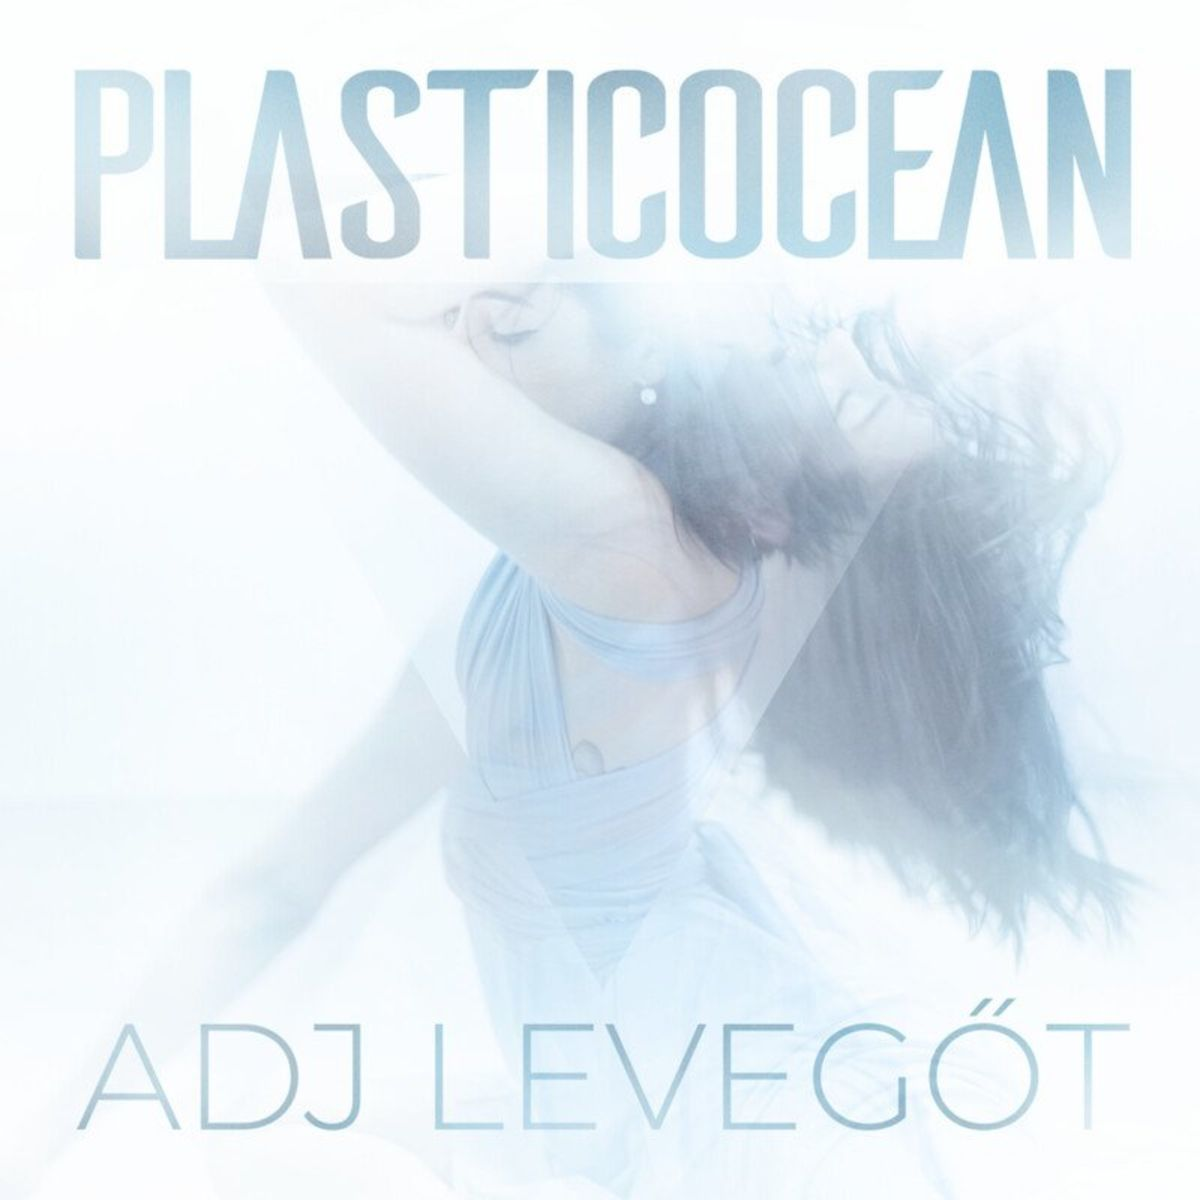 PlasticOcean - Adj levegőt [single] (2021)